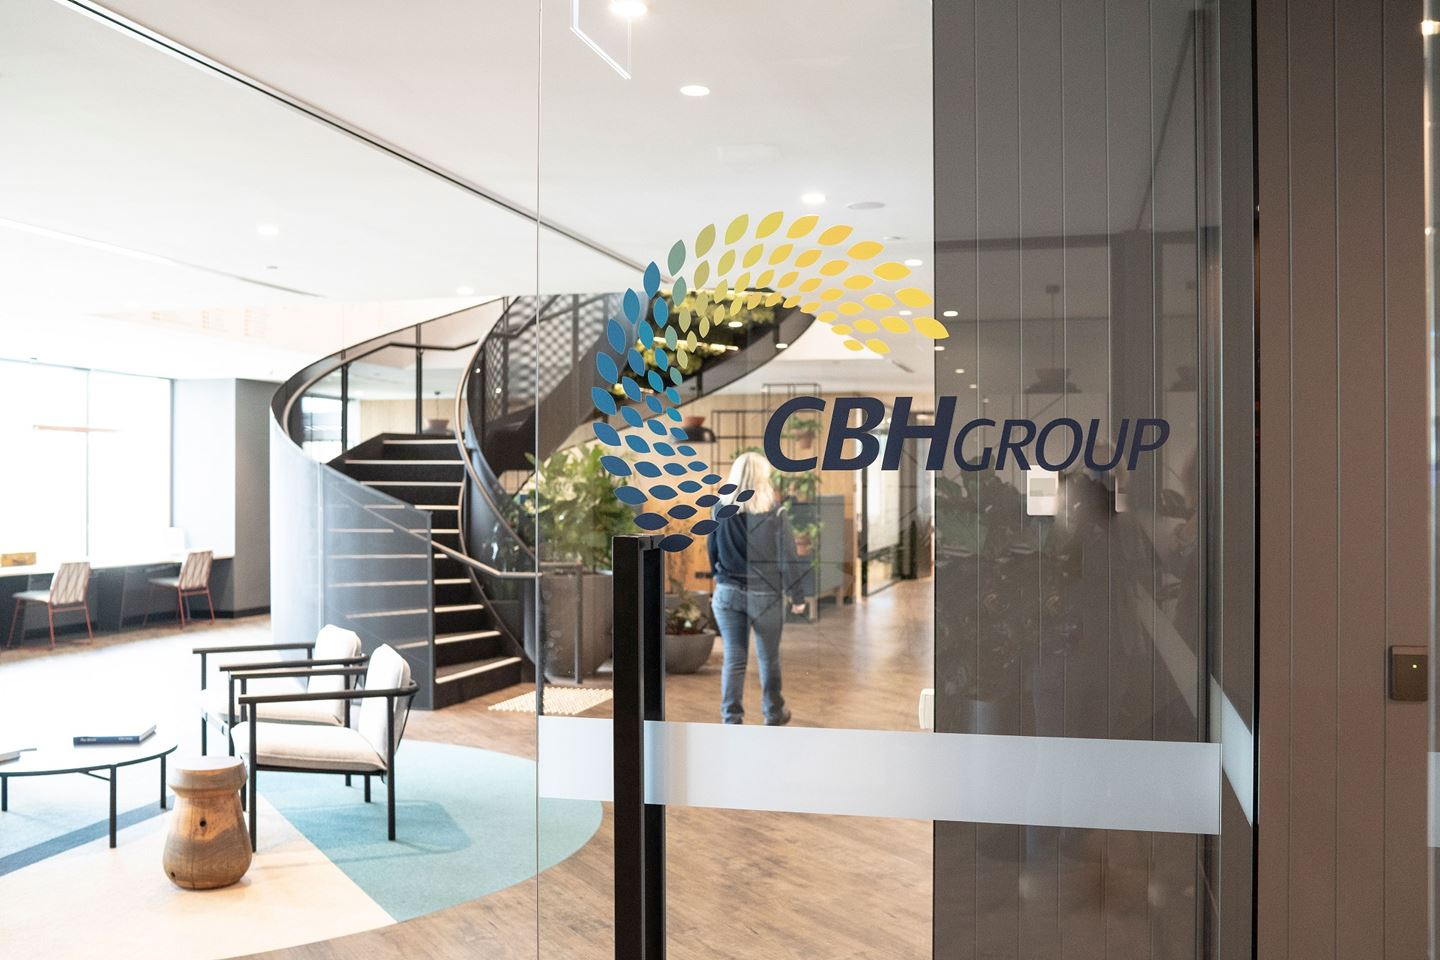 A glass door with the CBH Group logo shows the reception area and spiral staircase of CBH Head Office behind it